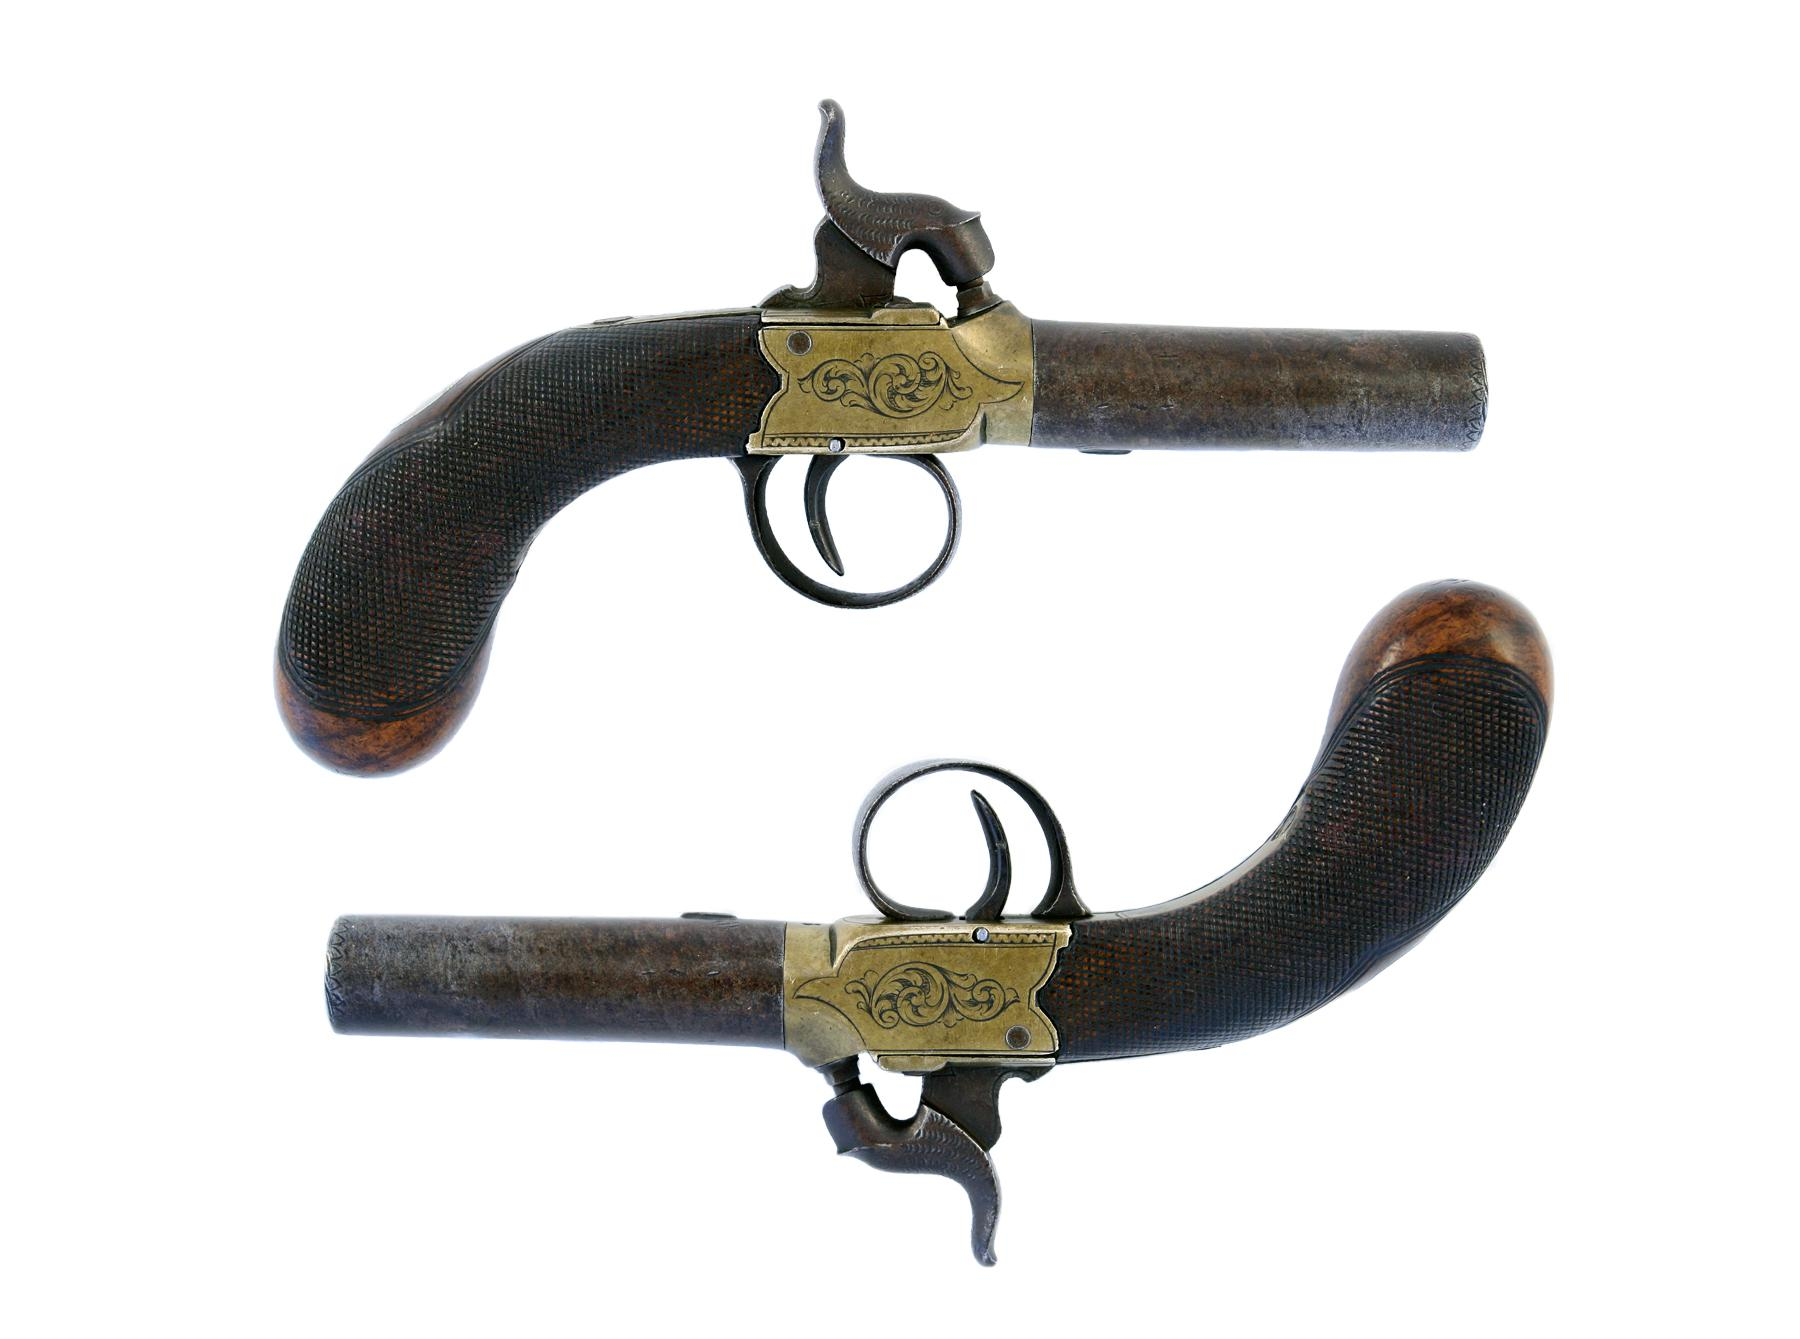 A Pair of Pocket Pistols